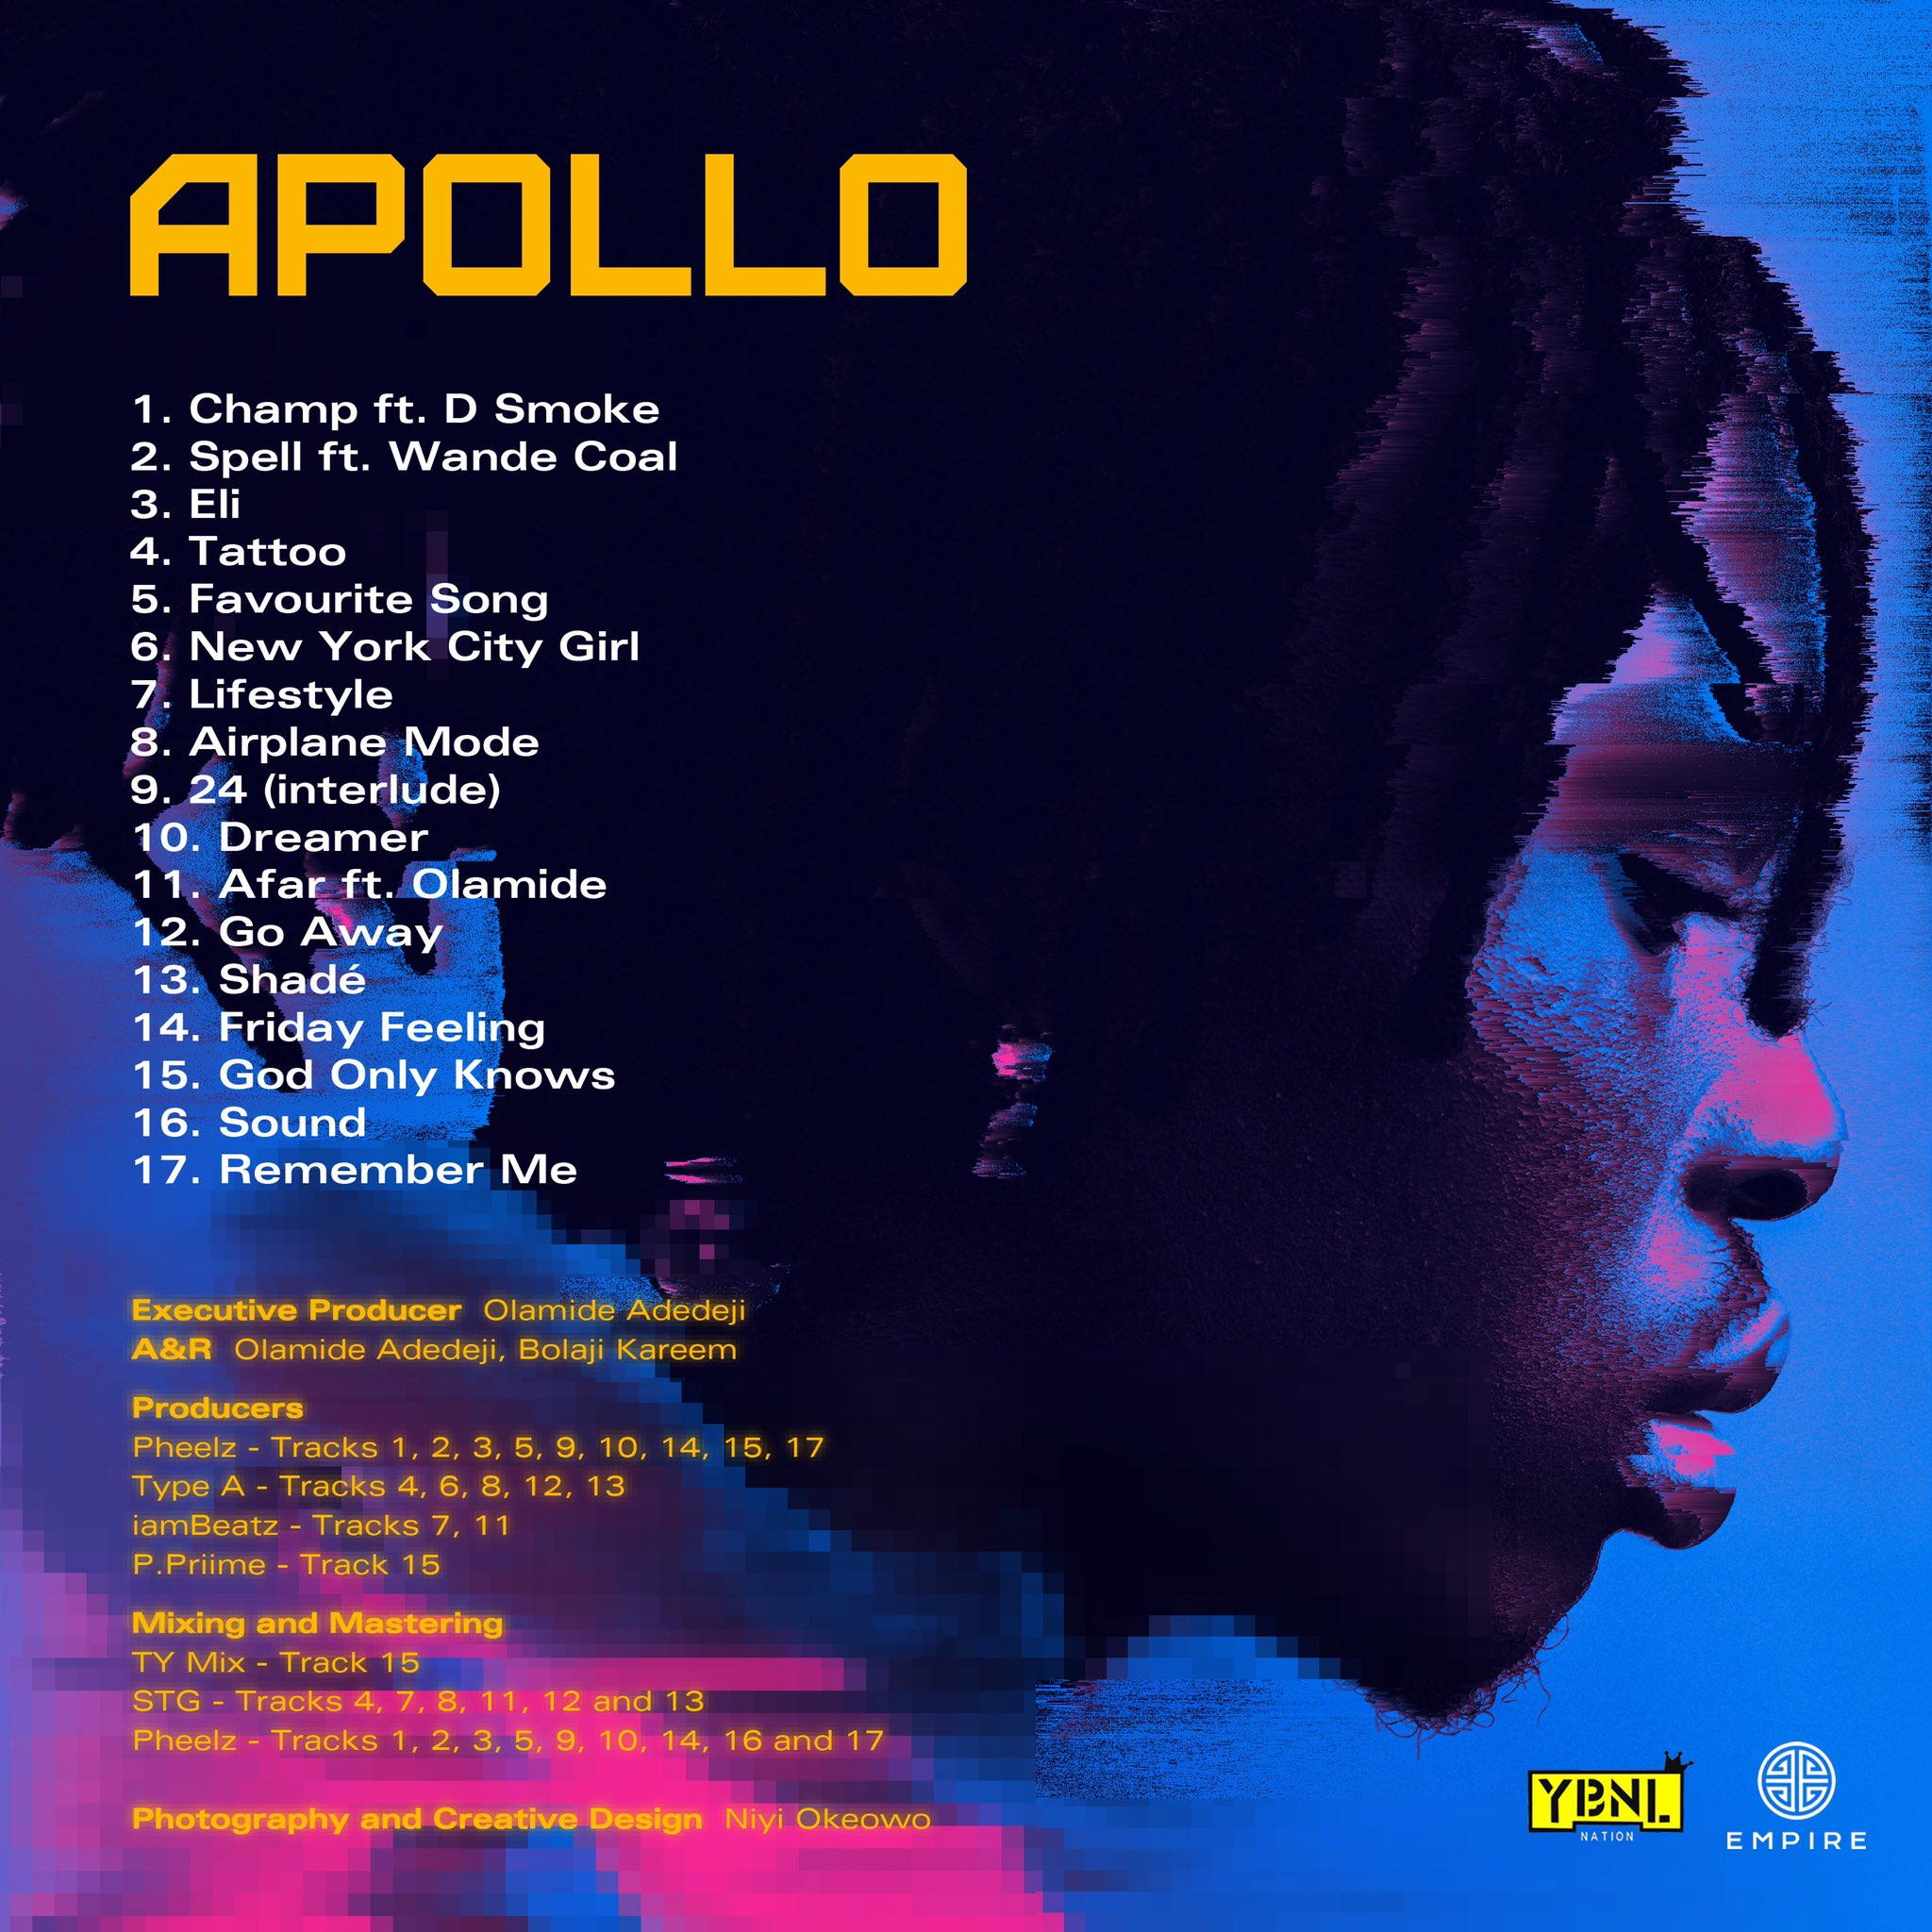 Nigerian singer, Fireboy DML announced the release of his sophomore project, 'Apollo'